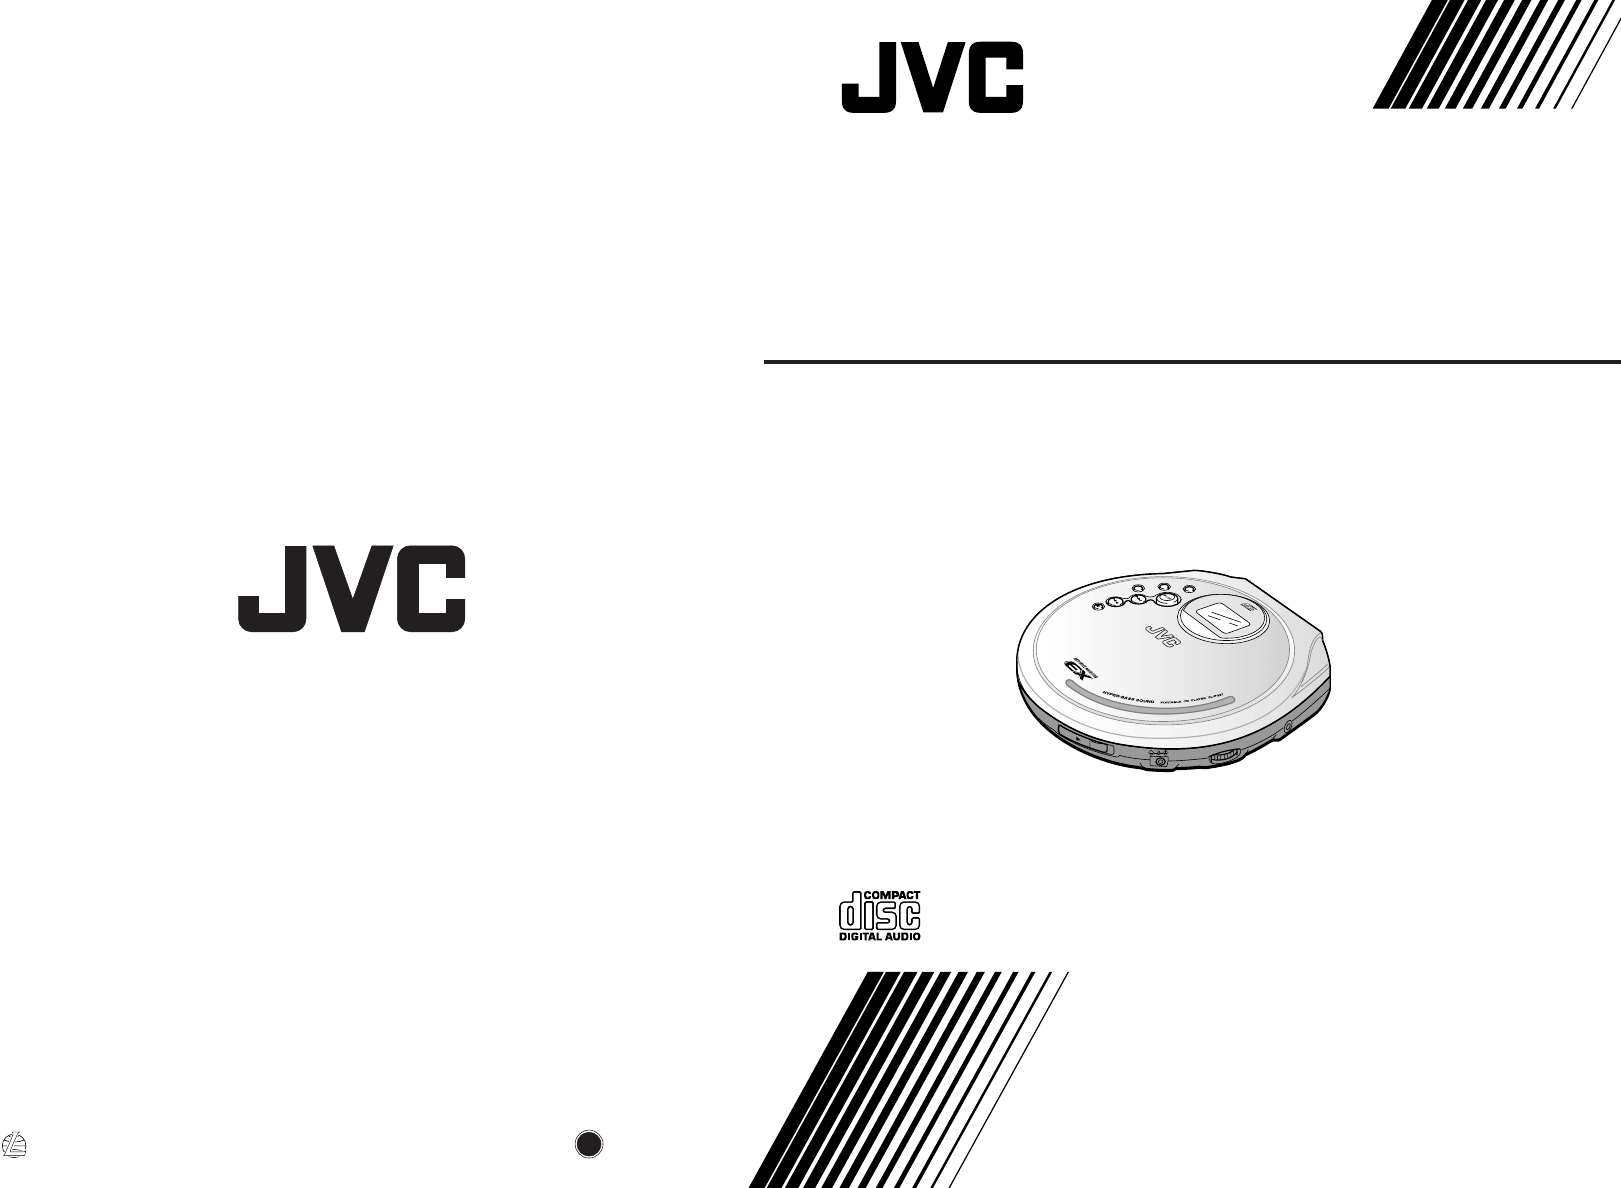 JVC Portable CD Player XL-PG37SL User Guide